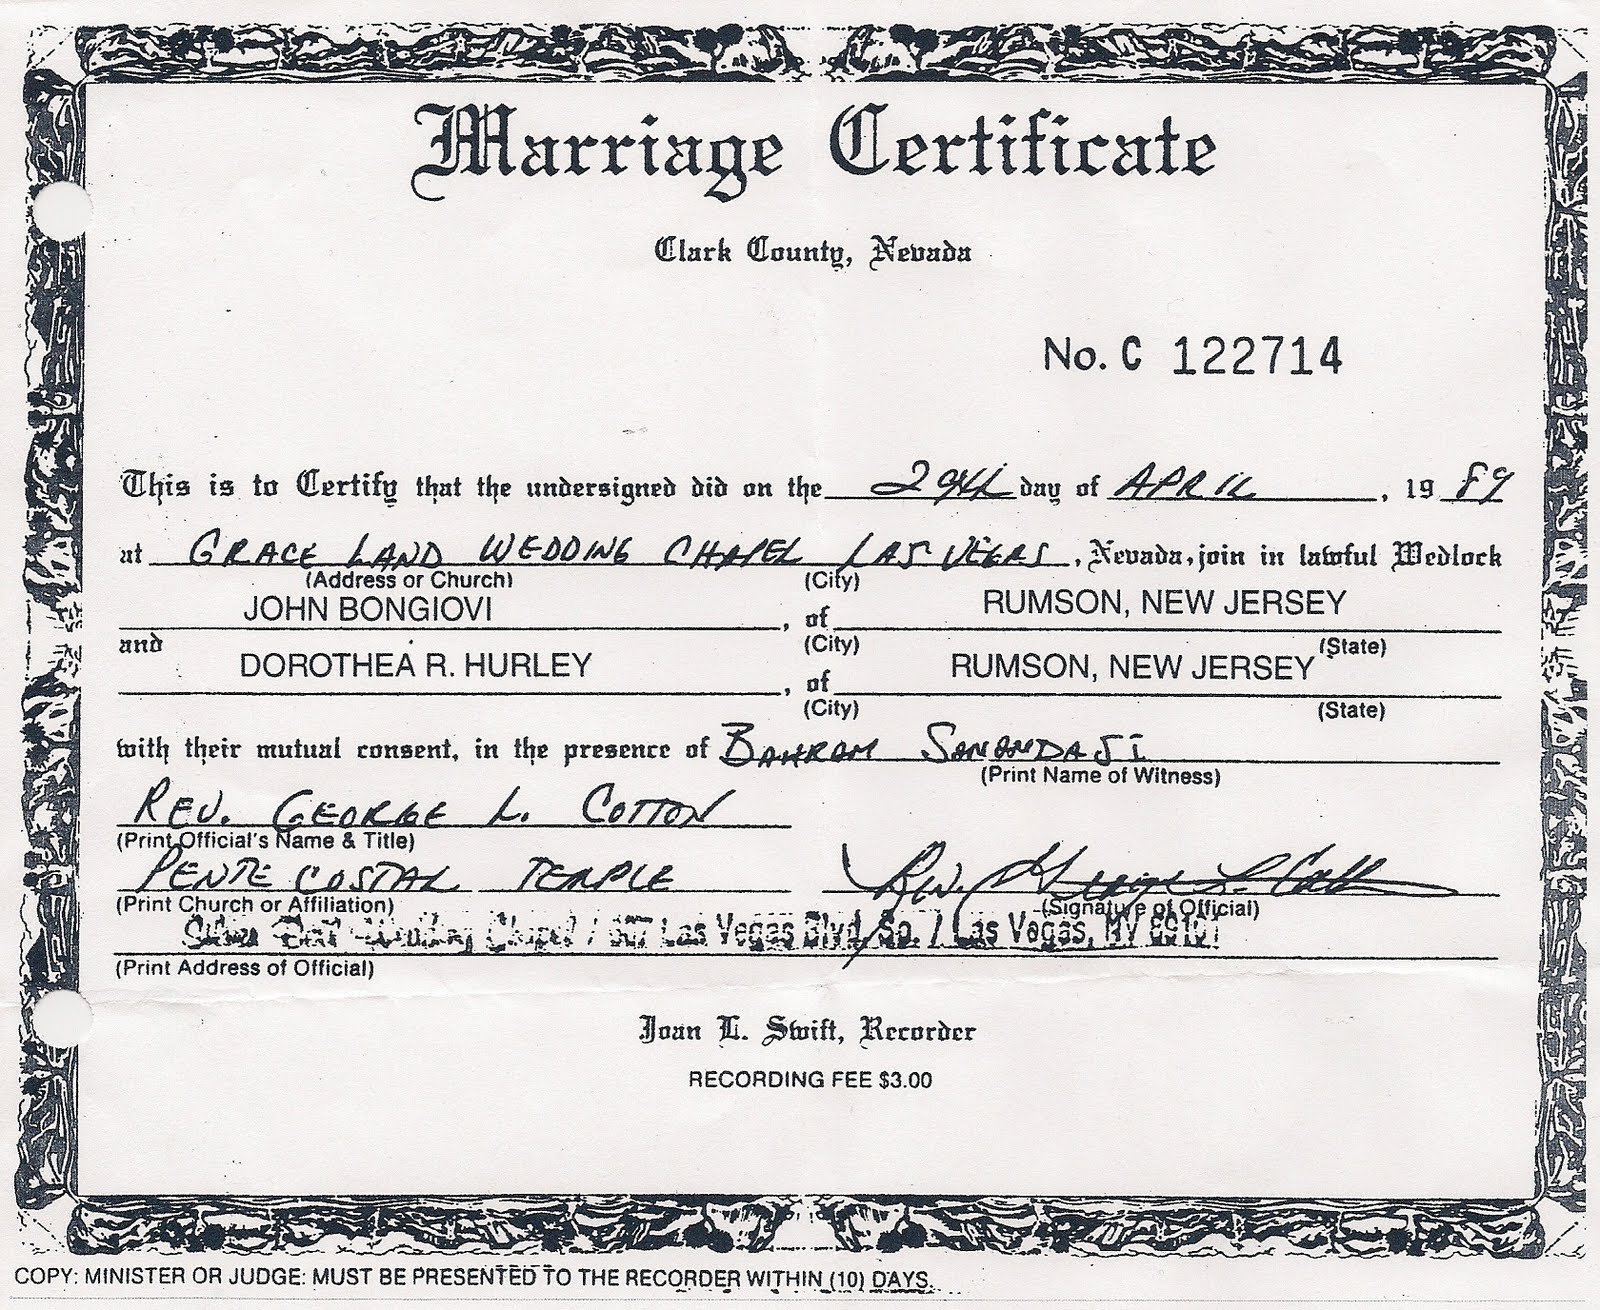 Awesome collection of clark county marriage certificate business jovi bits viva las vegas bon jovi style aiddatafo Images